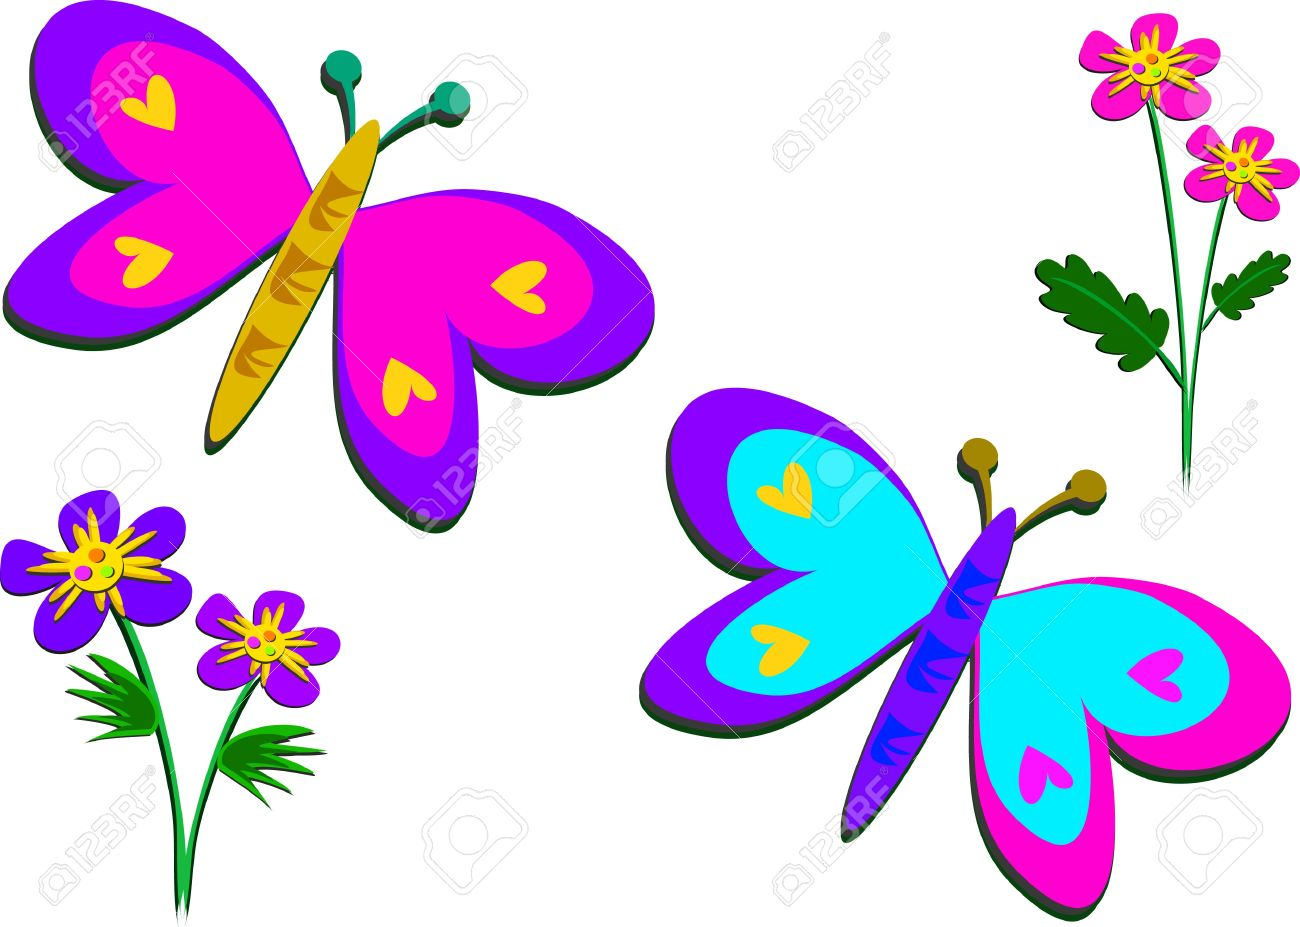 peaceful butterflies and flowers royalty free cliparts vectors and rh 123rf com pink flowers and butterflies clipart clipart flowers and butterflies border